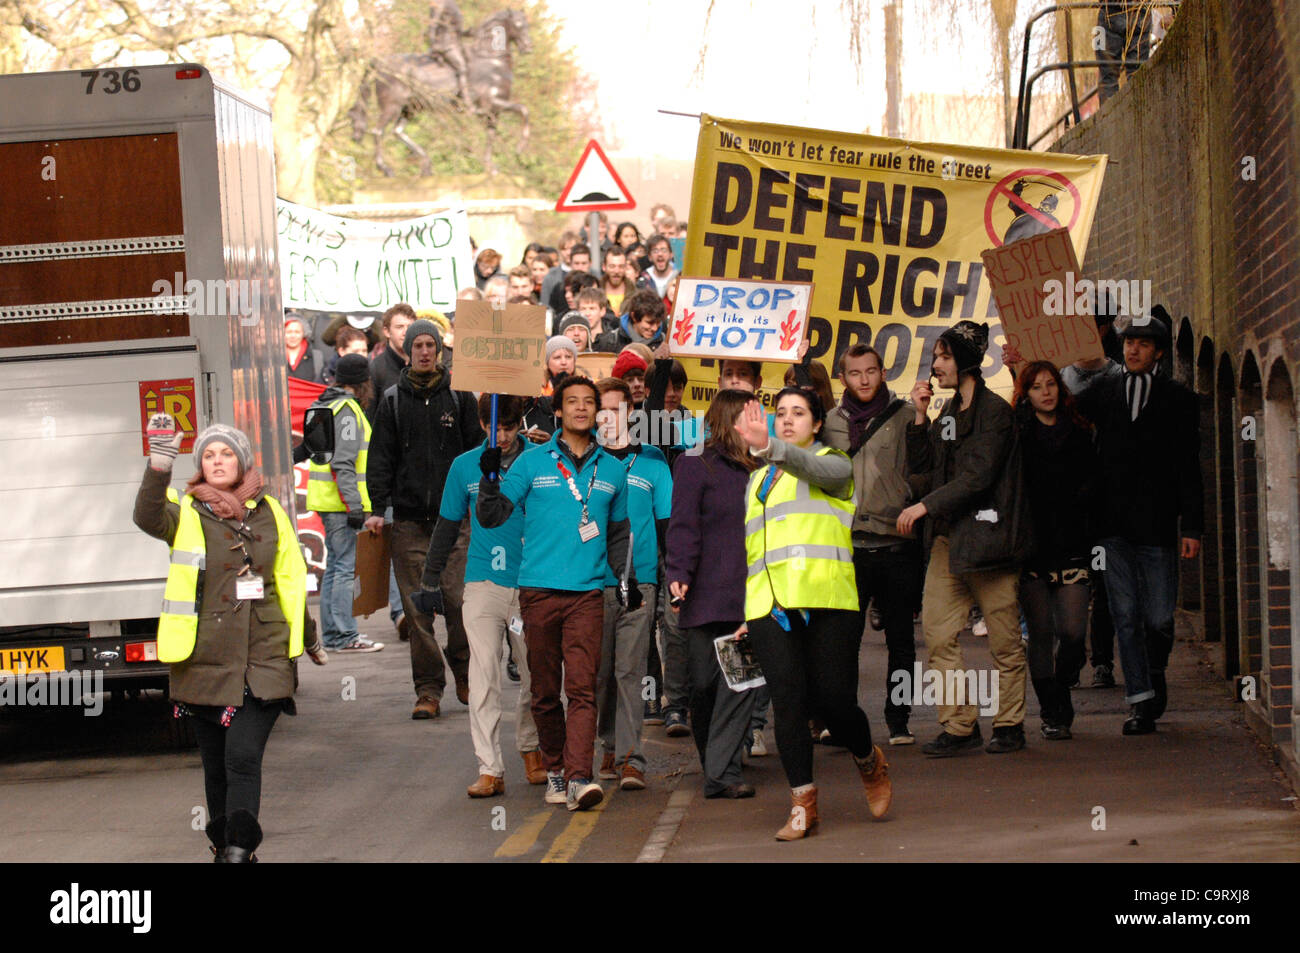 15/02/2012, Birmingham University, UK. Students arrive from all over the country to defend the right to protest - Stock Image